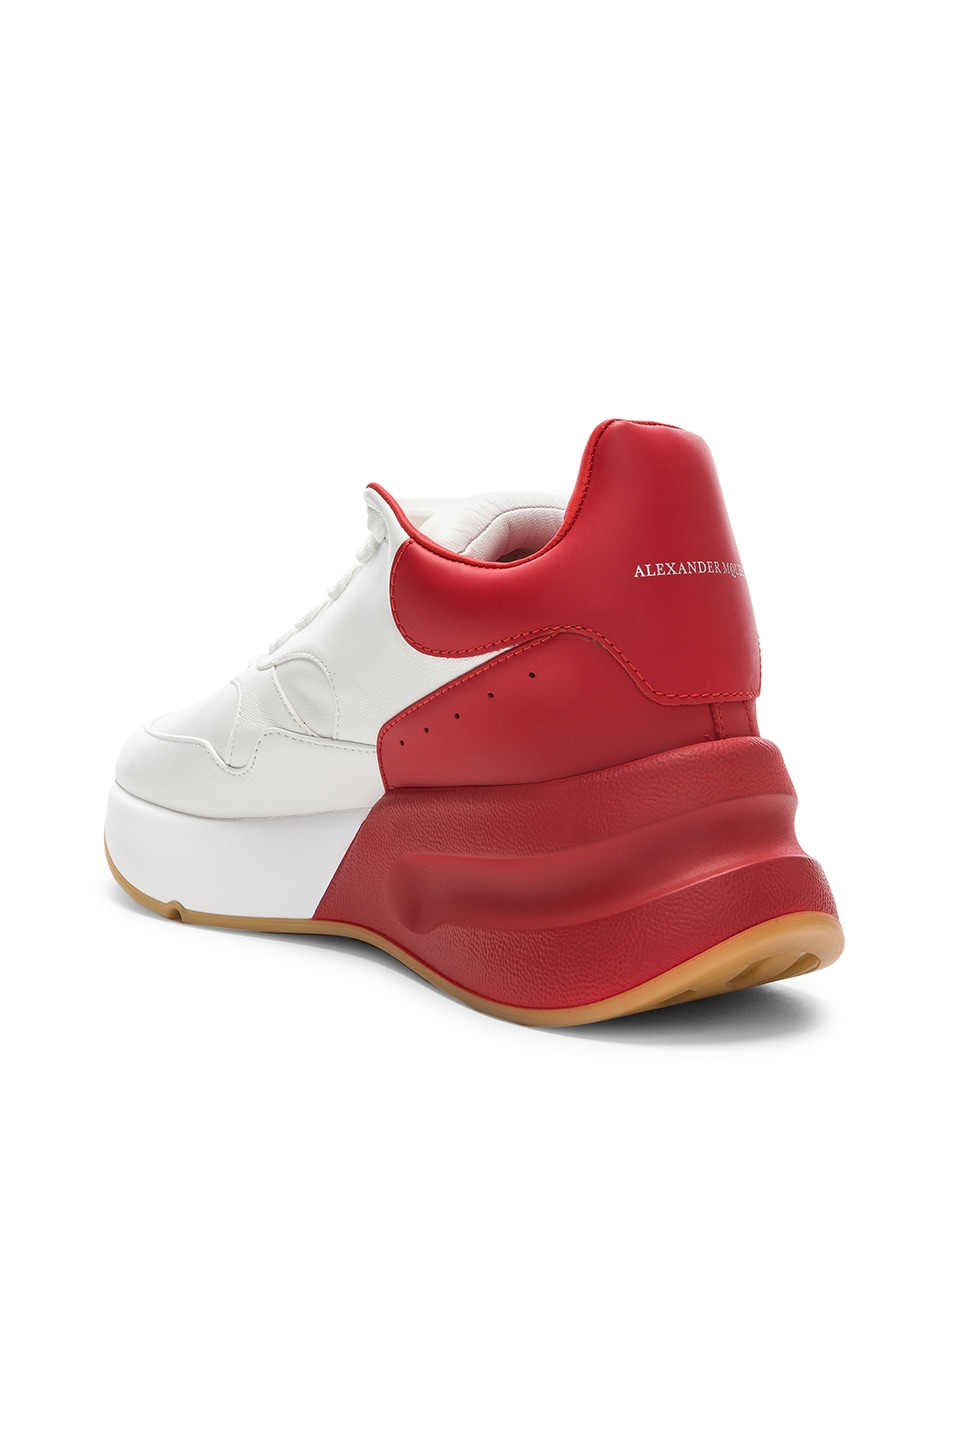 Image 3 of Alexander McQueen Two Tone Platform Sneakers in Optic White & Lust Red